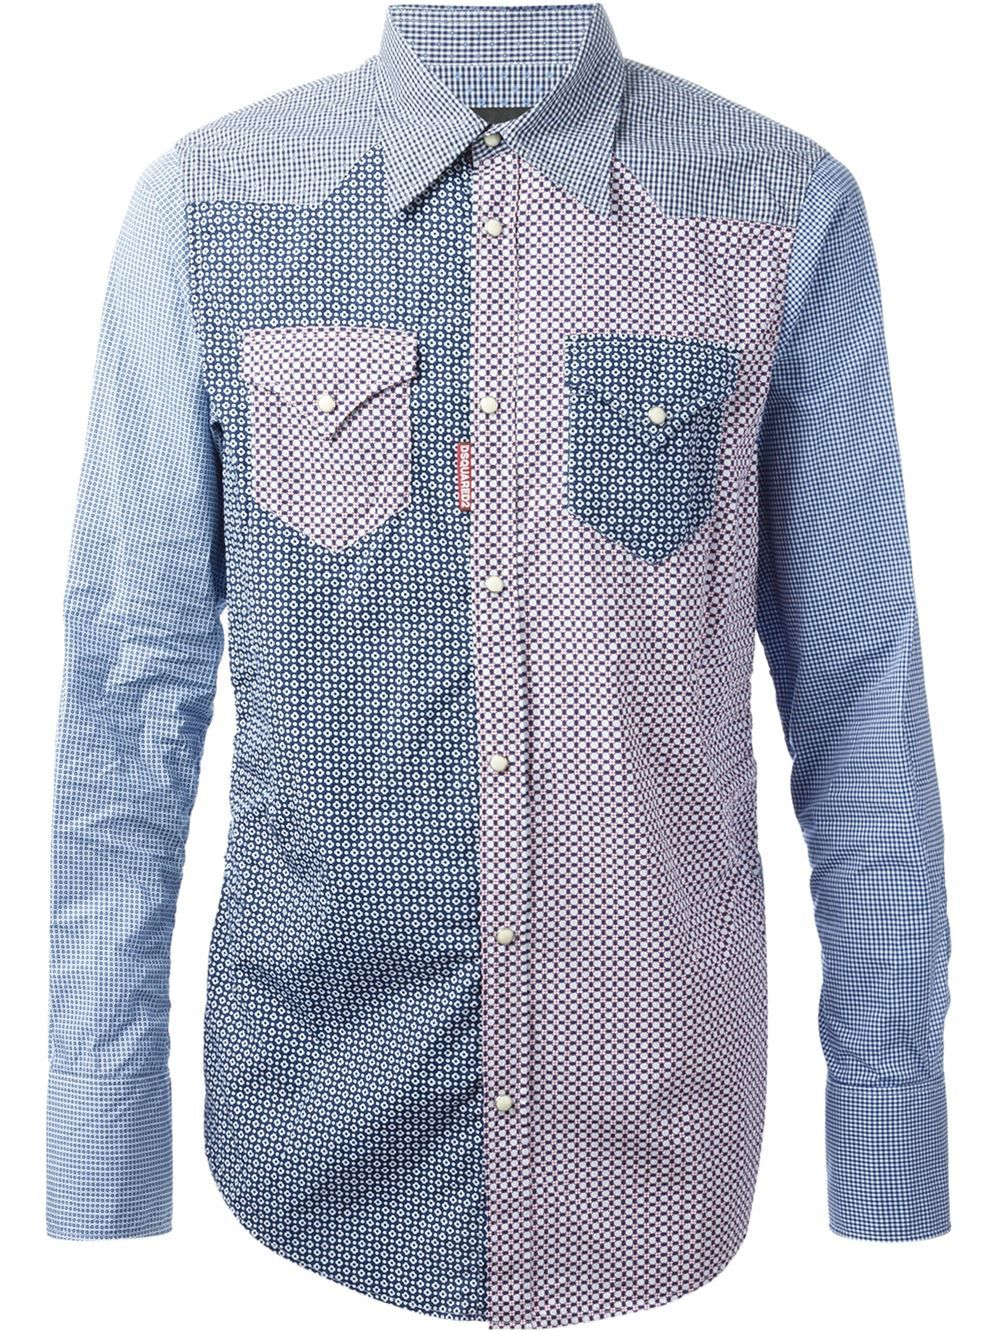 fe739b9a46 Dsquared2 Camisa Con Mezcla De Estampados - Farfetch. Fashion StoresWomen s  FashionMen ShirtsDress ...